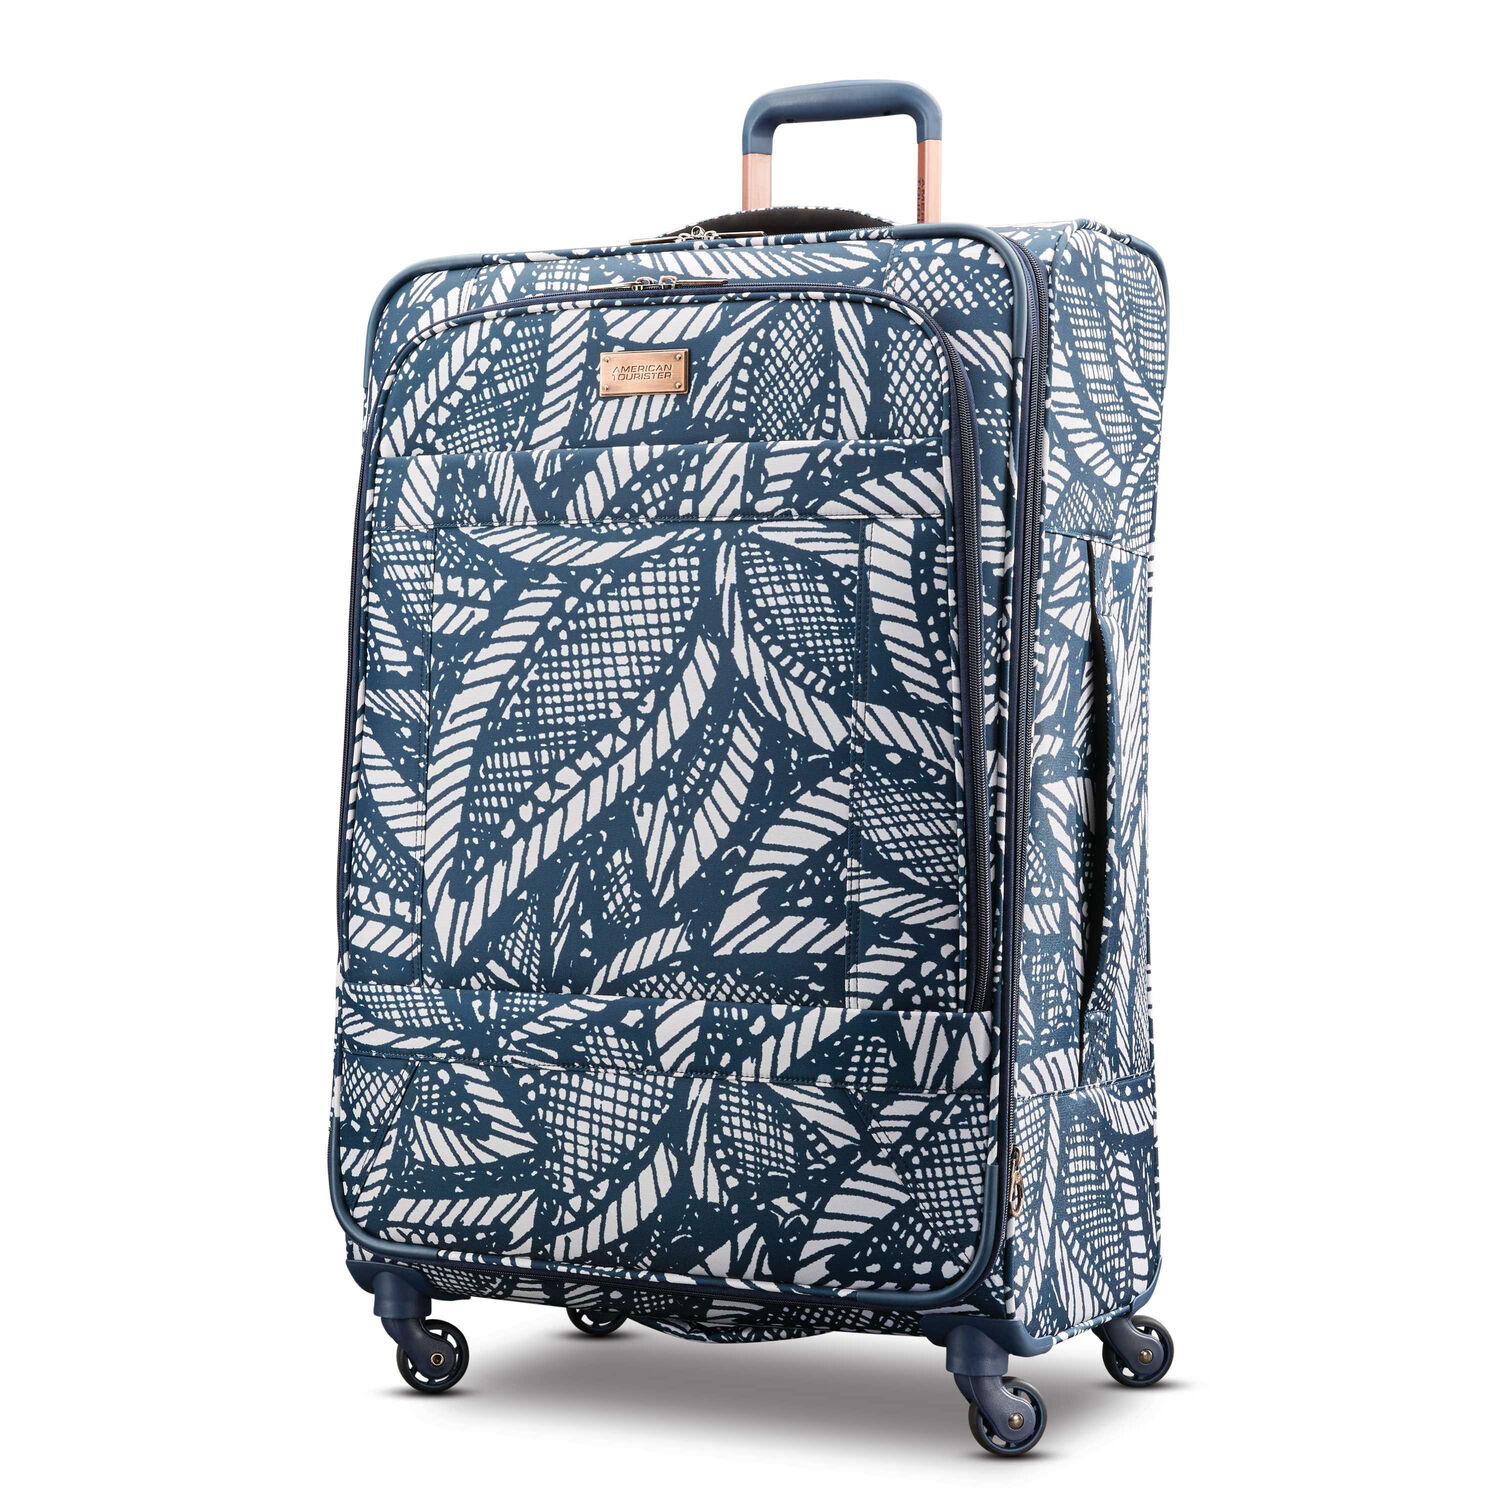 1659f37f68 American Tourister Belle Voyage 28